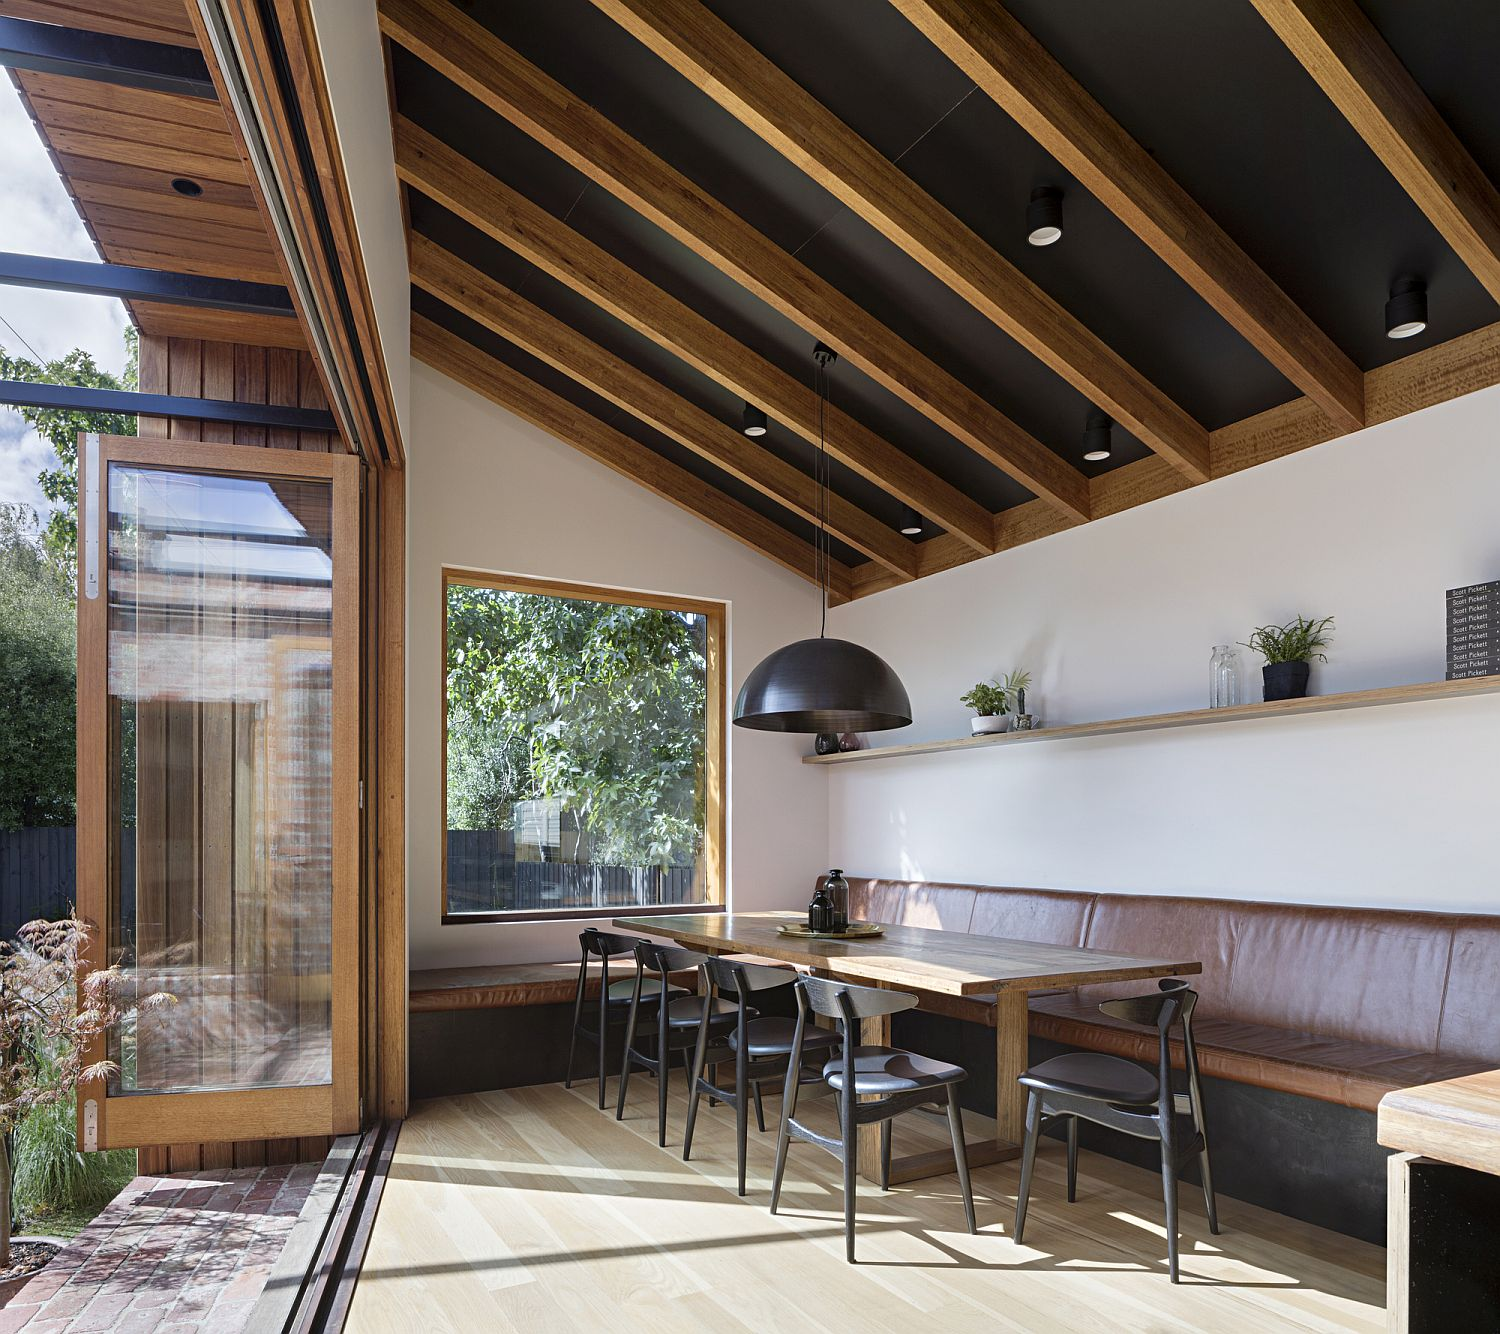 Dining-area-of-the-house-with-banquette-style-seating